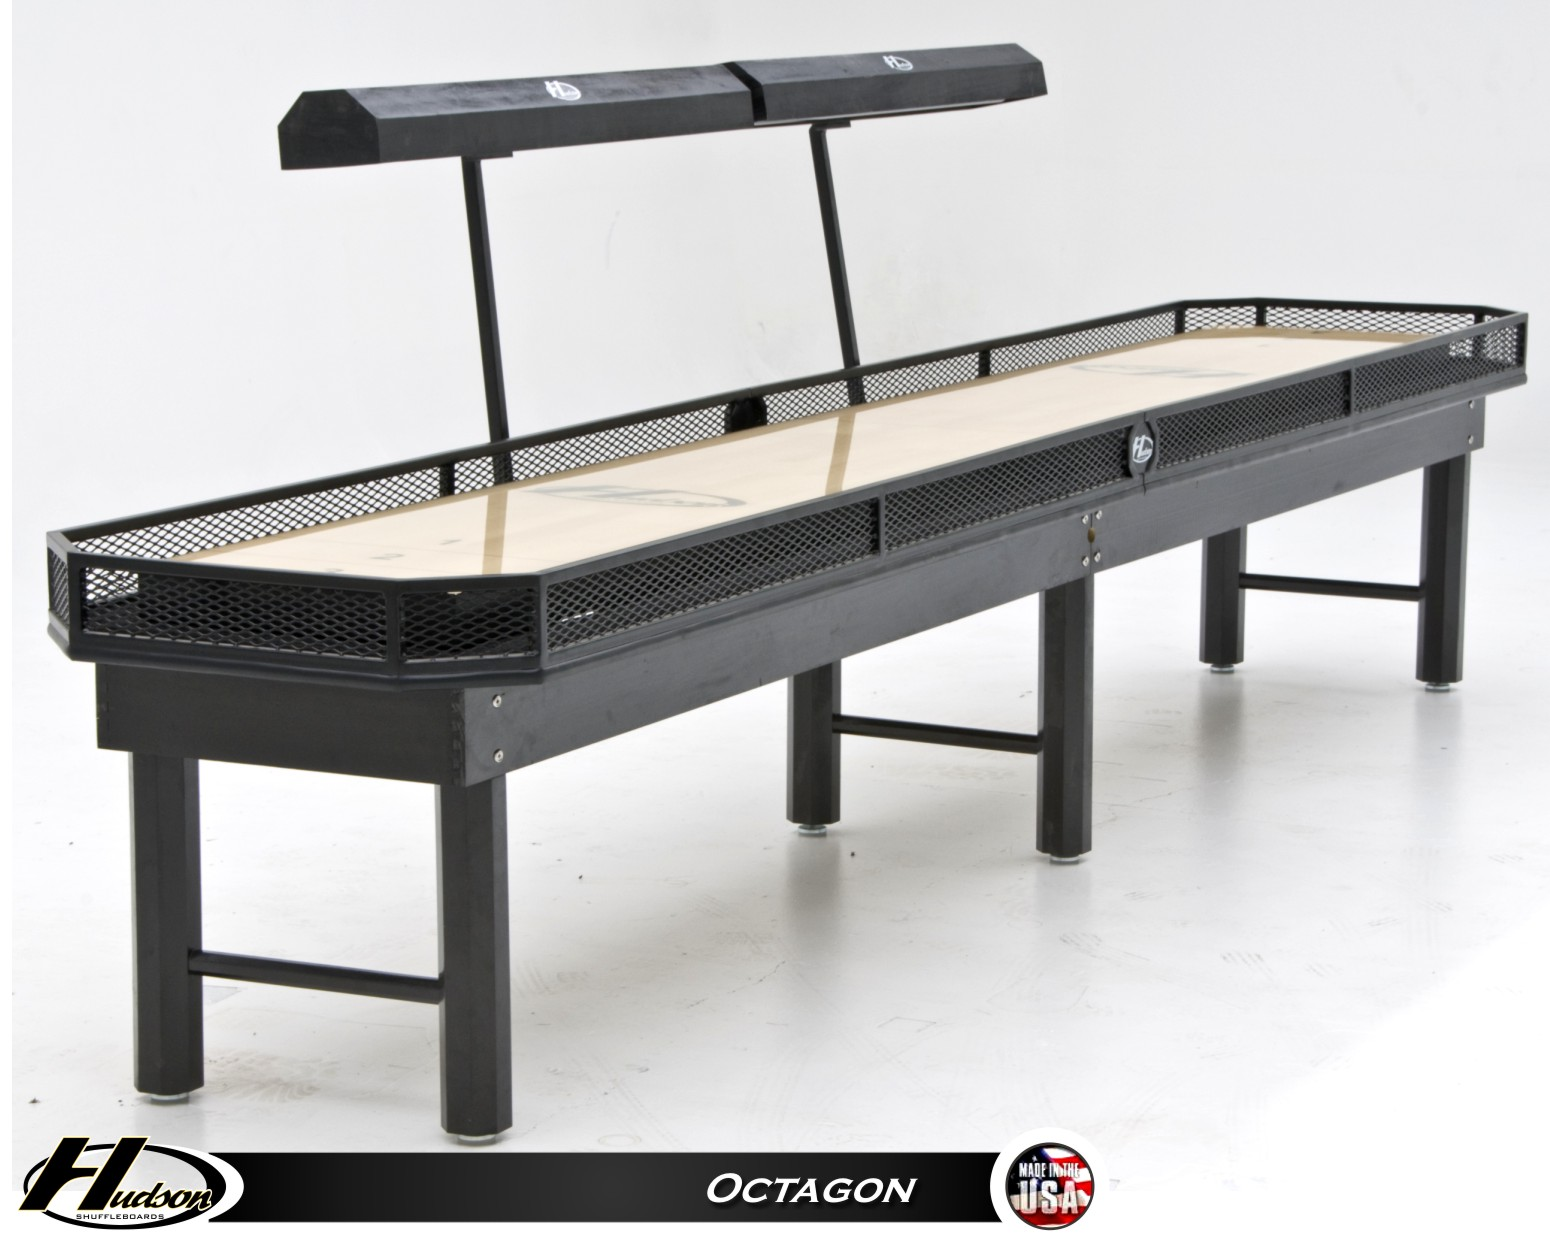 16 Octagon Shuffleboard Table Shuffleboard Net